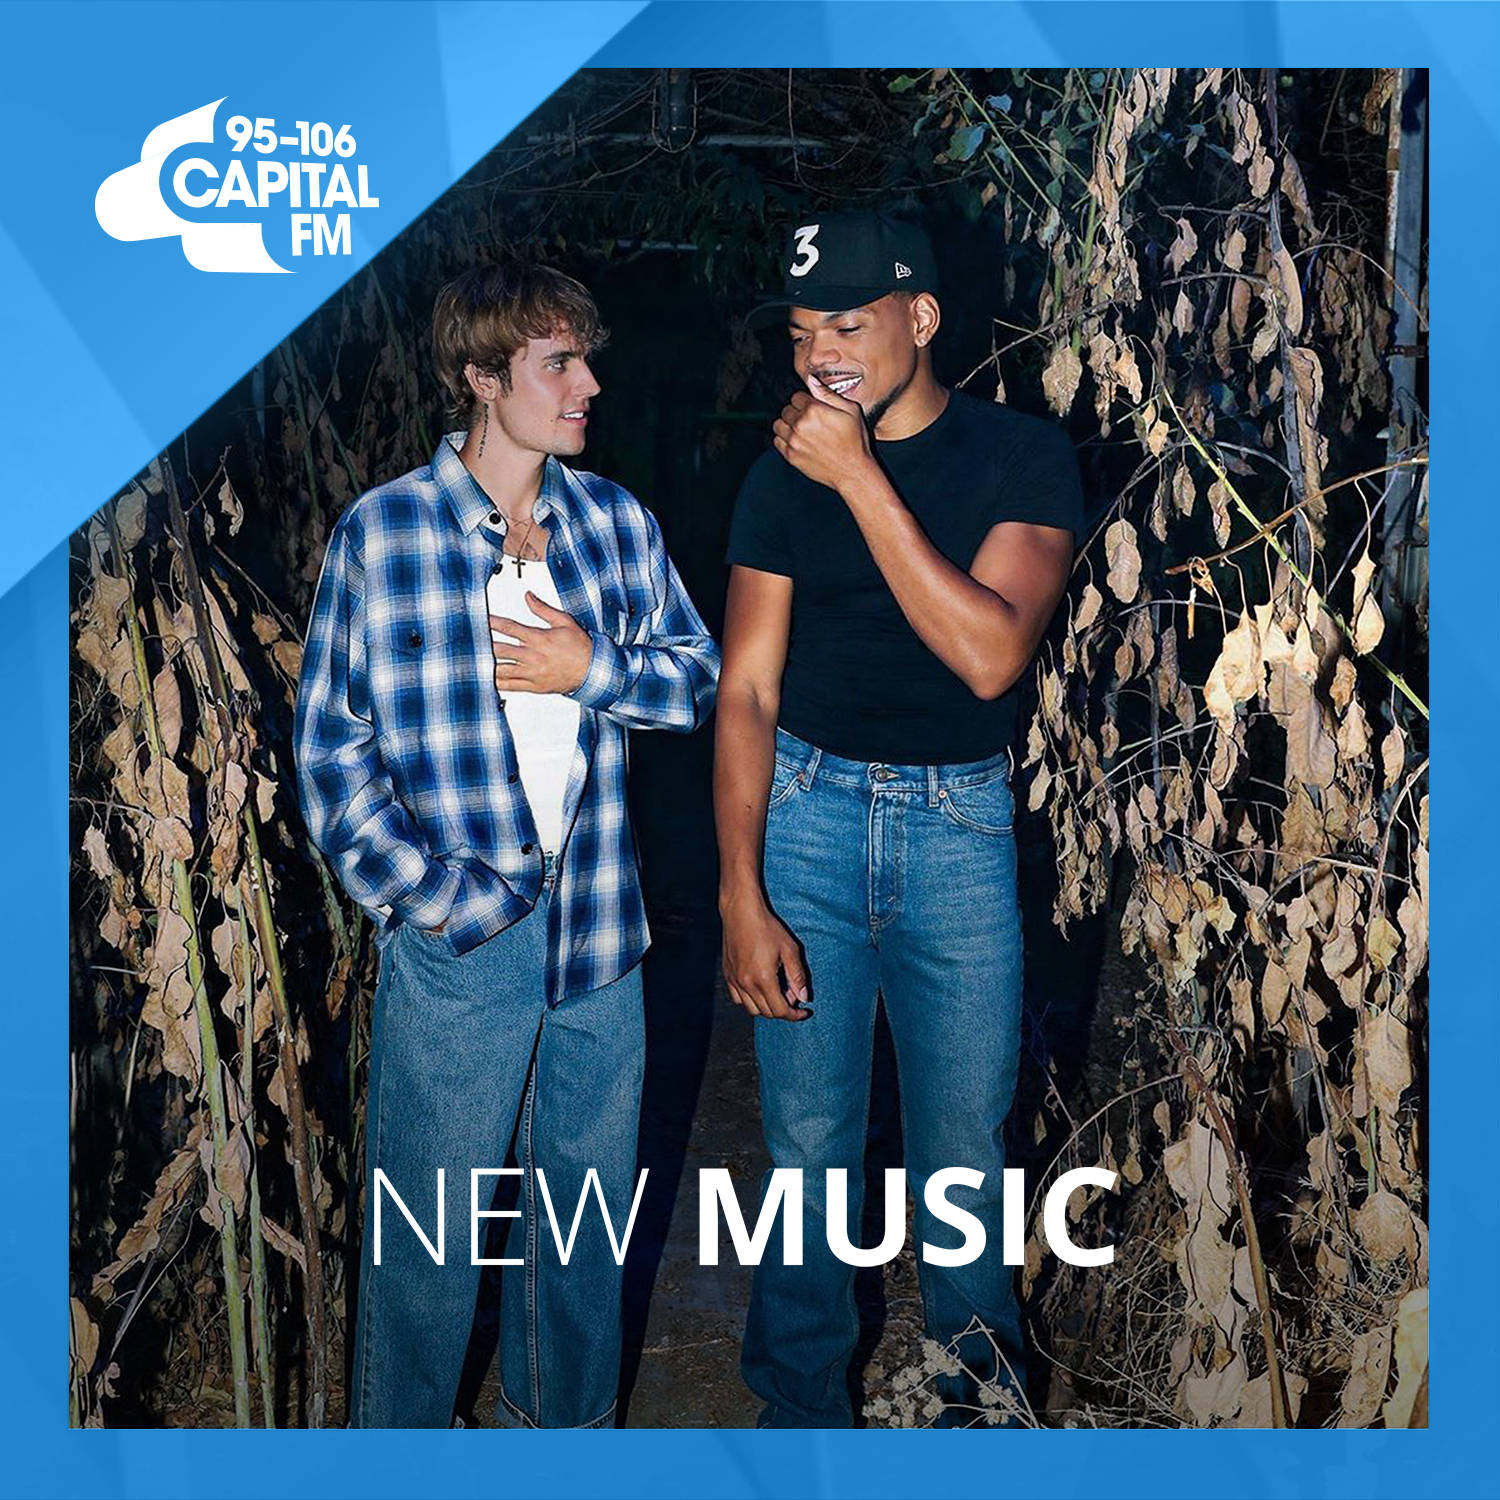 Capital New Music image